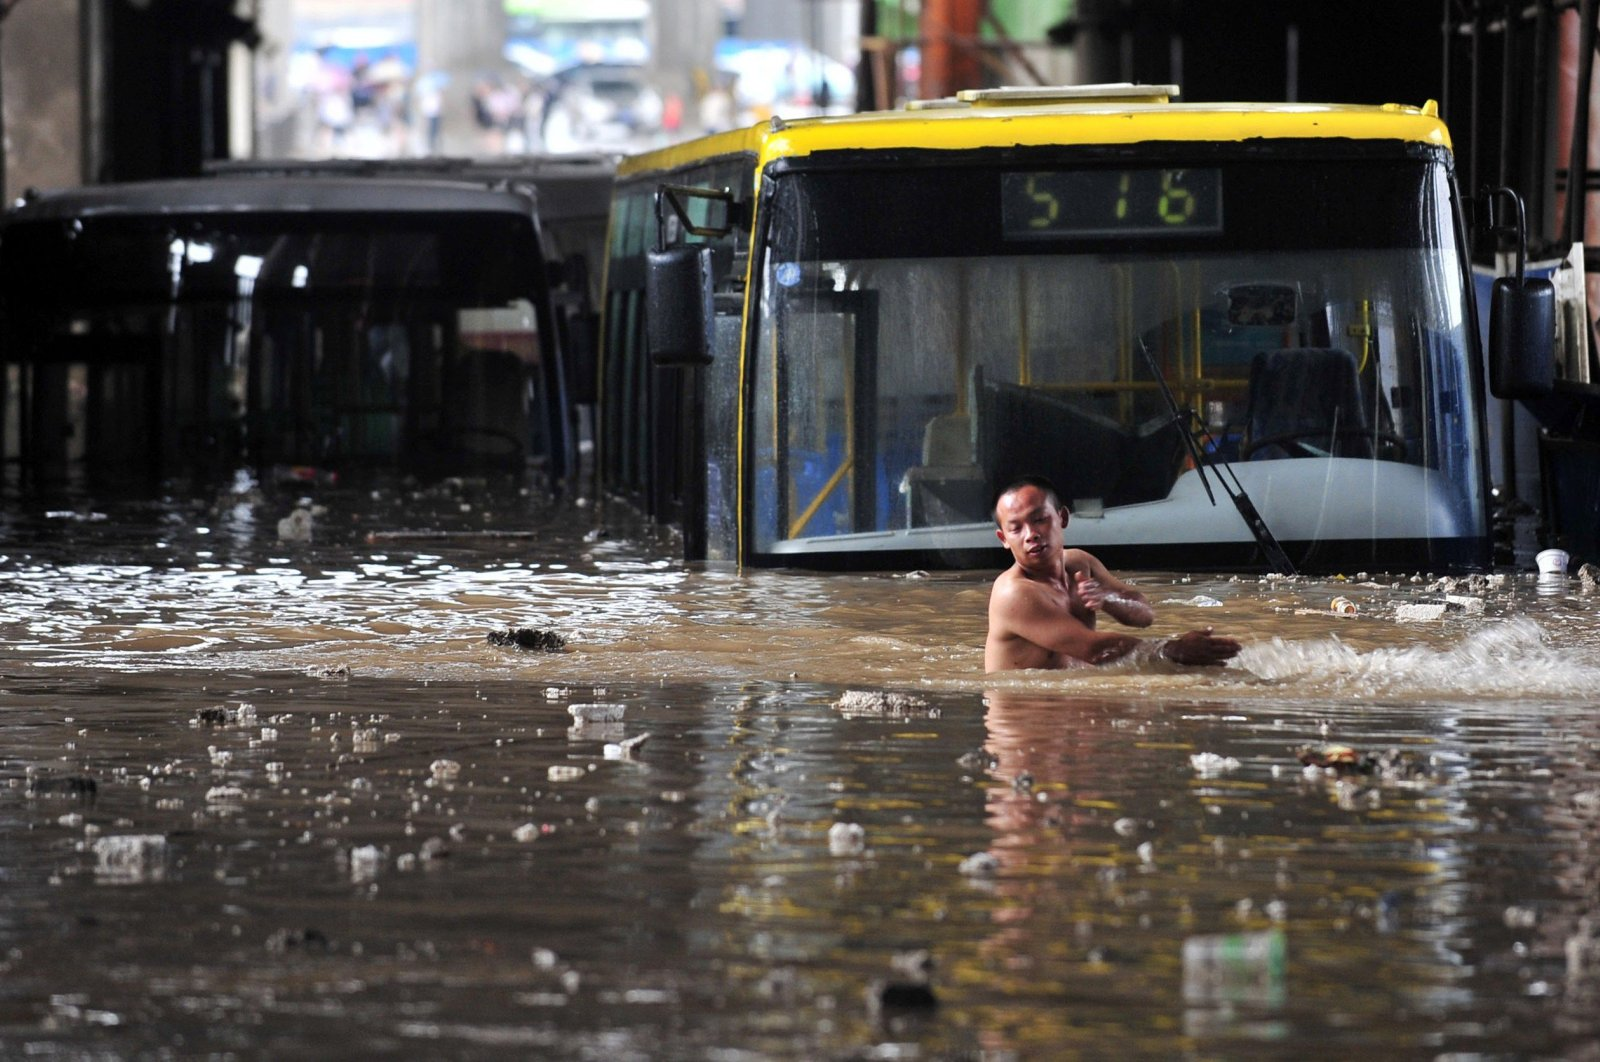 A driver wades through floodwater after his bus was stranded in a flooded tunnel in Wuhan, Hubei province June 18, 2011. (Reuters Photo)